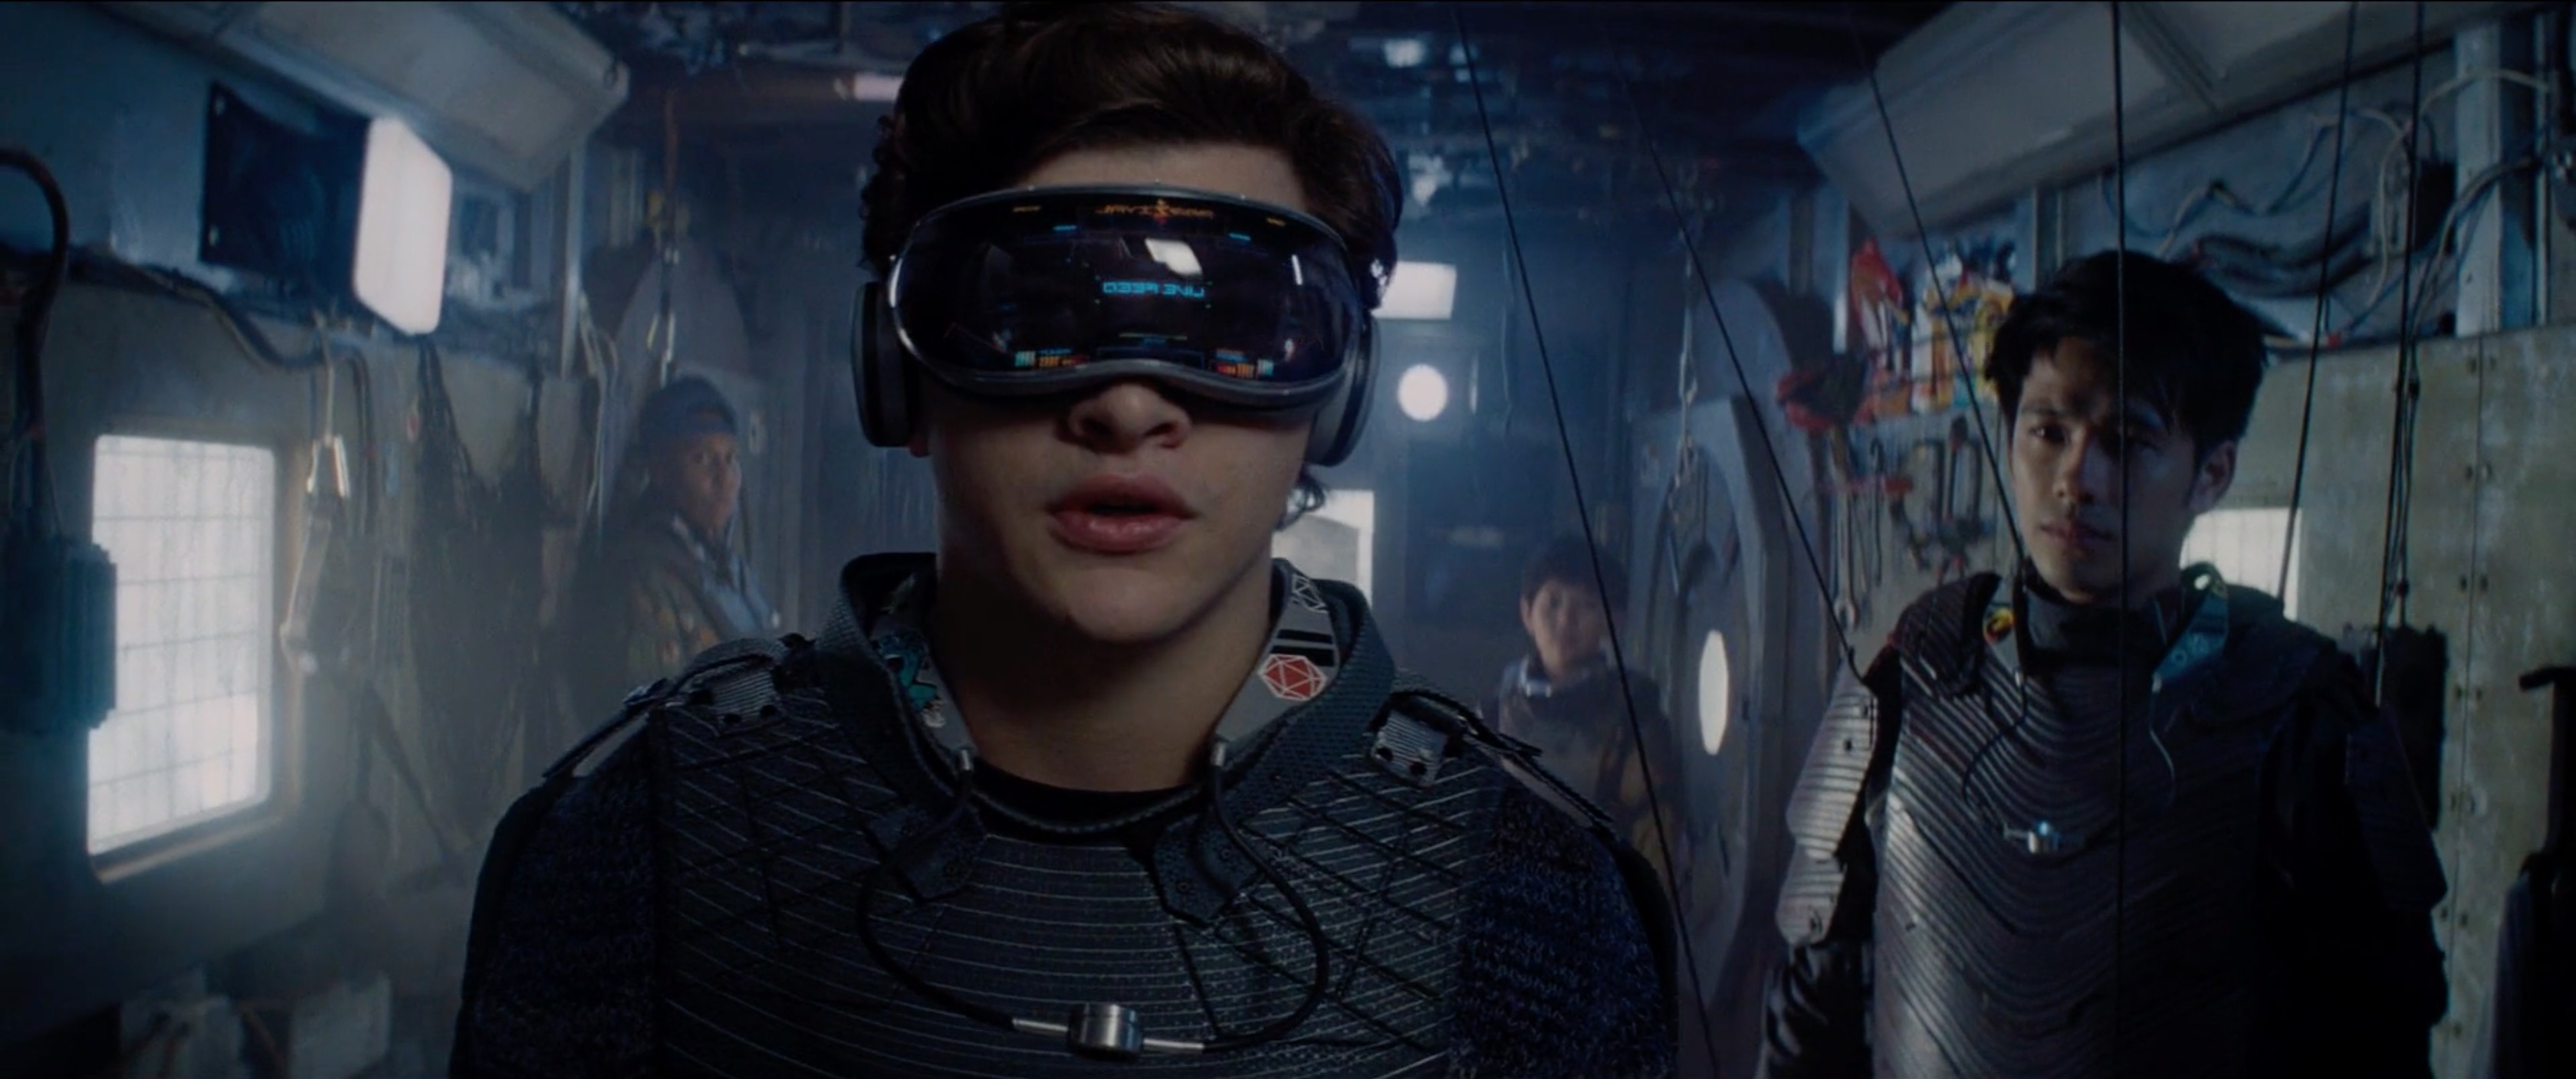 Ready Player One GFX Design Reel